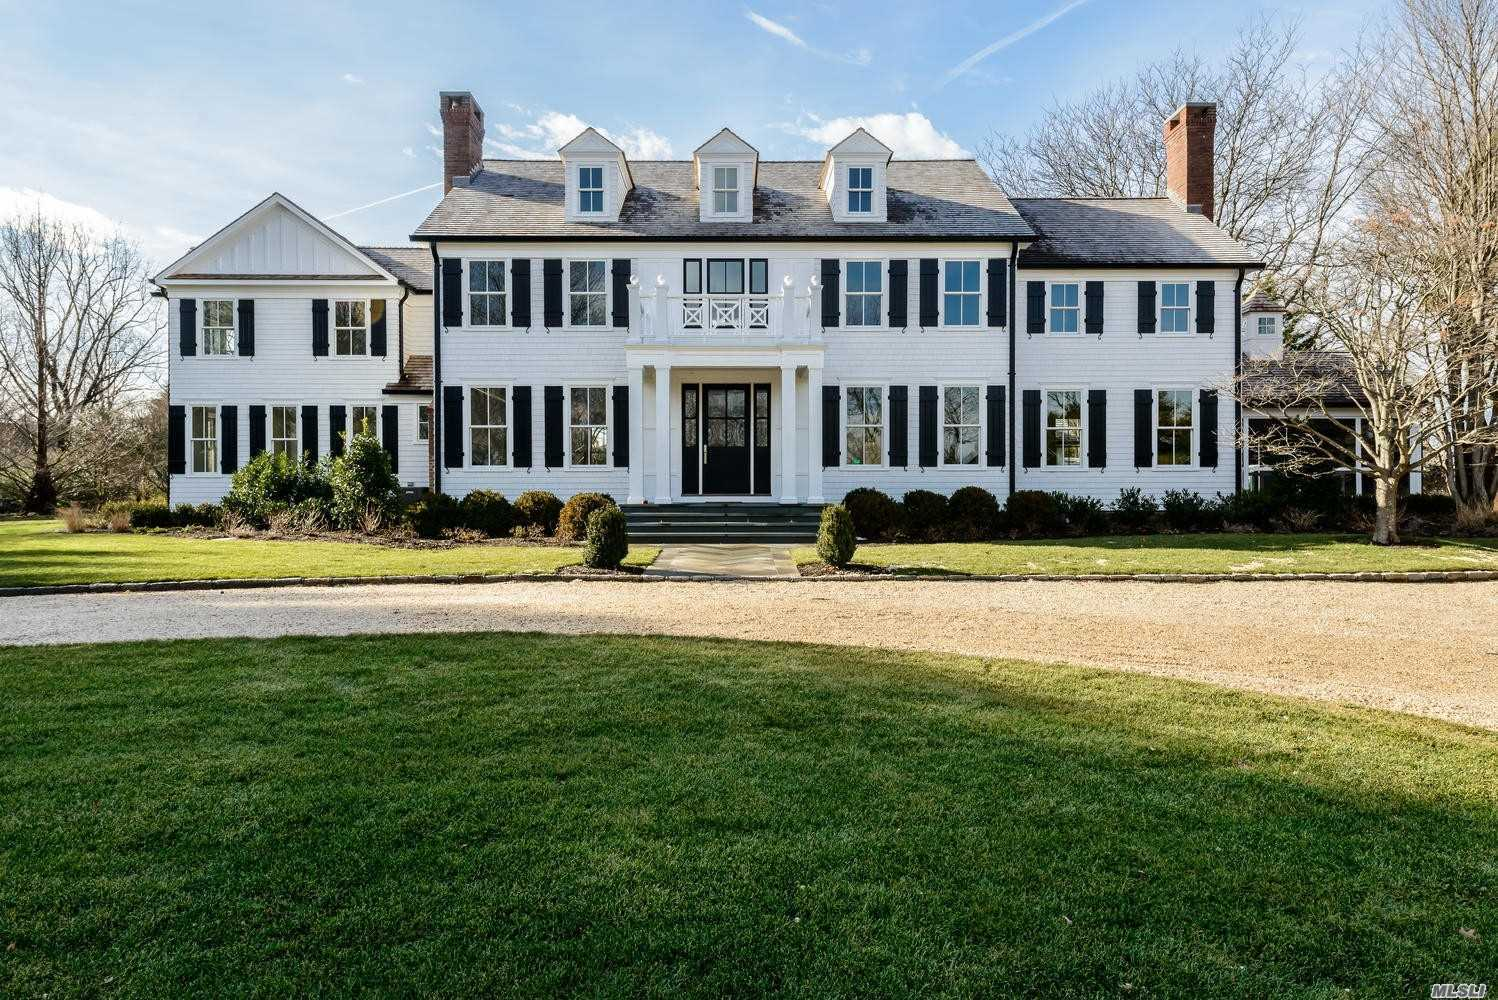 Superbly Crafted To Reflect A Hamptons Lifestyle, This Traditional Colonial Has Been Reimagined In 2017 And Presented As New From The Inside Out. With Modern Appointments, A State Of The Art Gourmet Kitchen, And Designer Baths To A Shingle Roof And Stunning Windows, This Residence Combines The Expected And Unexpected. Screened In Porch, Separate Guest Studio, Pool And Poolhouse And Mature, Specimen Plantings Define A Lush 2 Acre Property With Private Beach, Dock And Mooring (Dues Req;D).